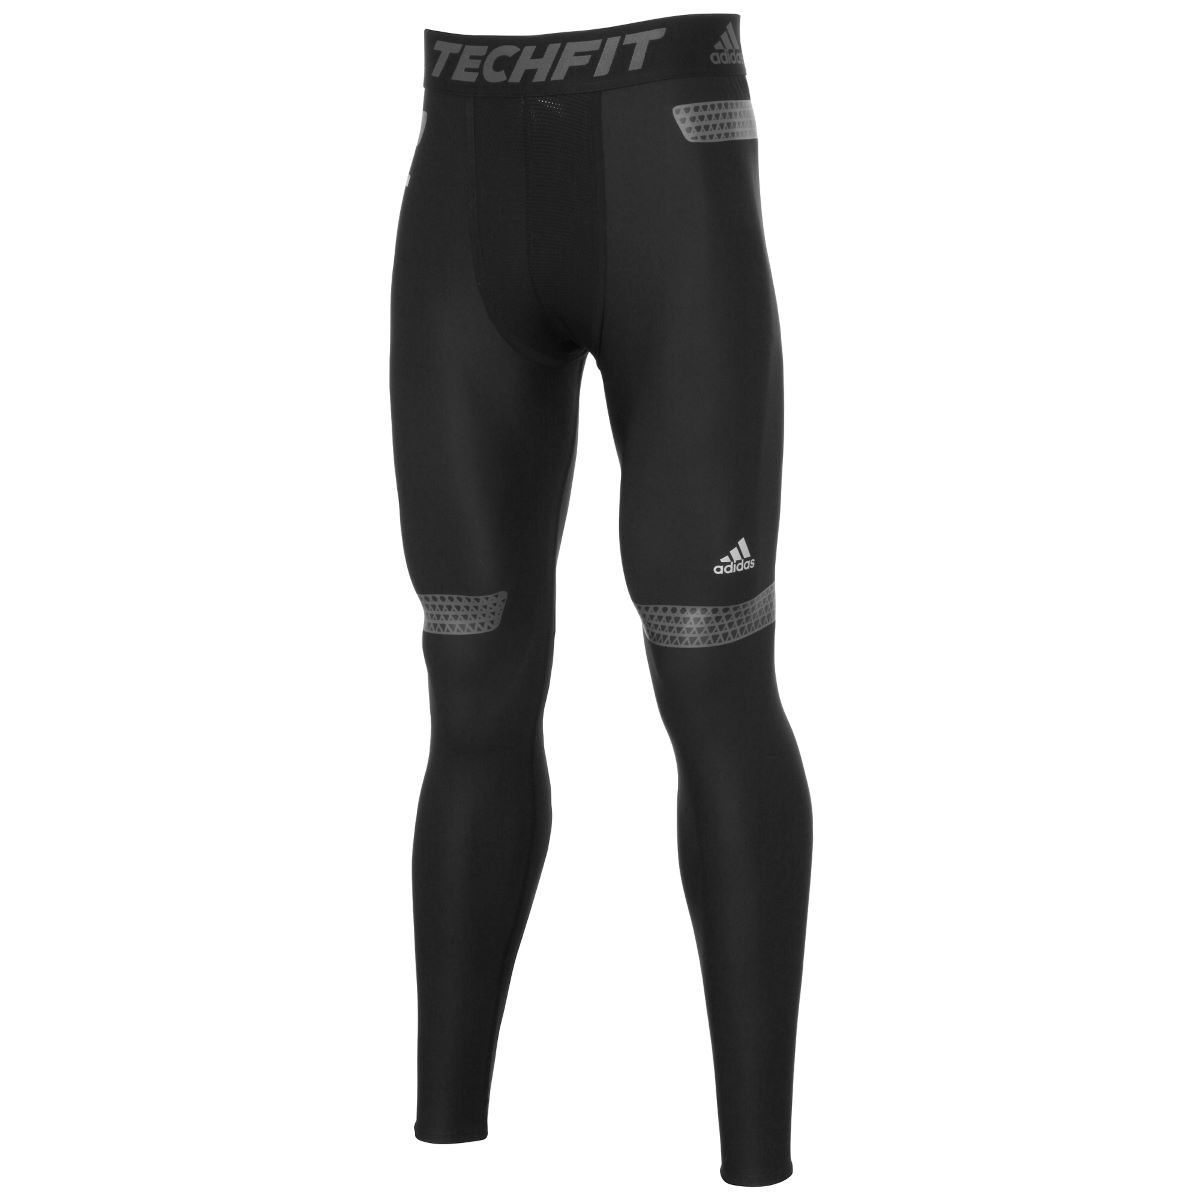 Collant Adidas Techfit Power (PE16) - XL Noir Sous-vêtements compression